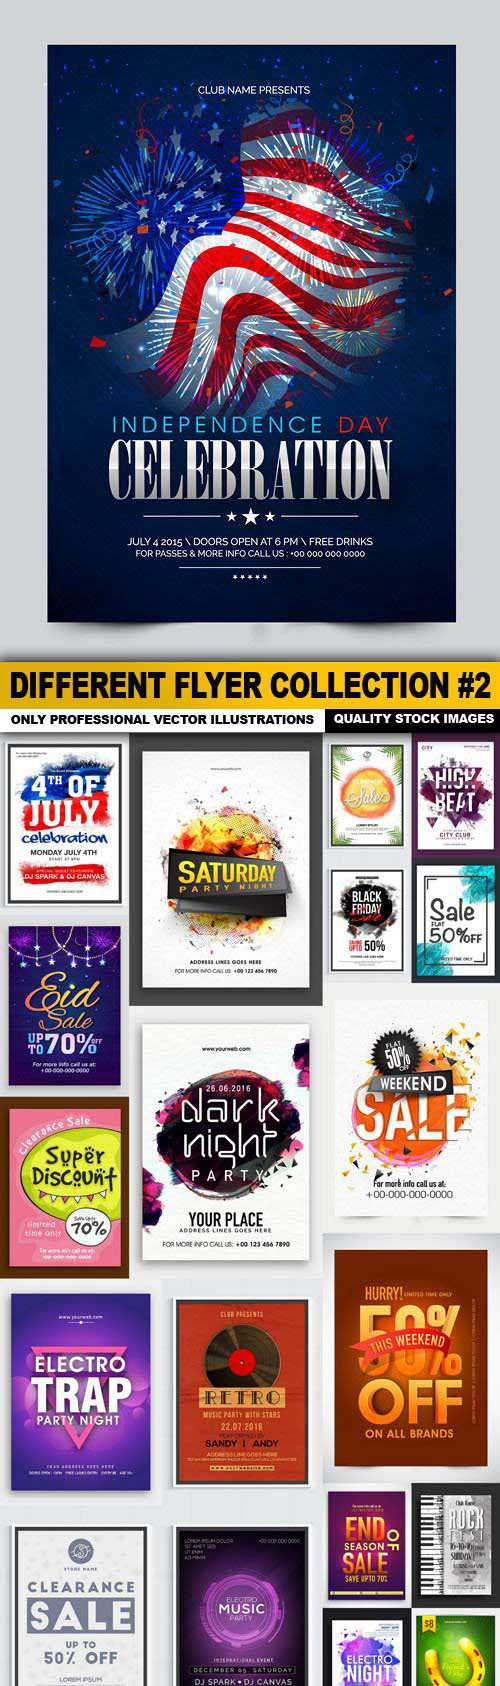 Different Flyer Collection #2